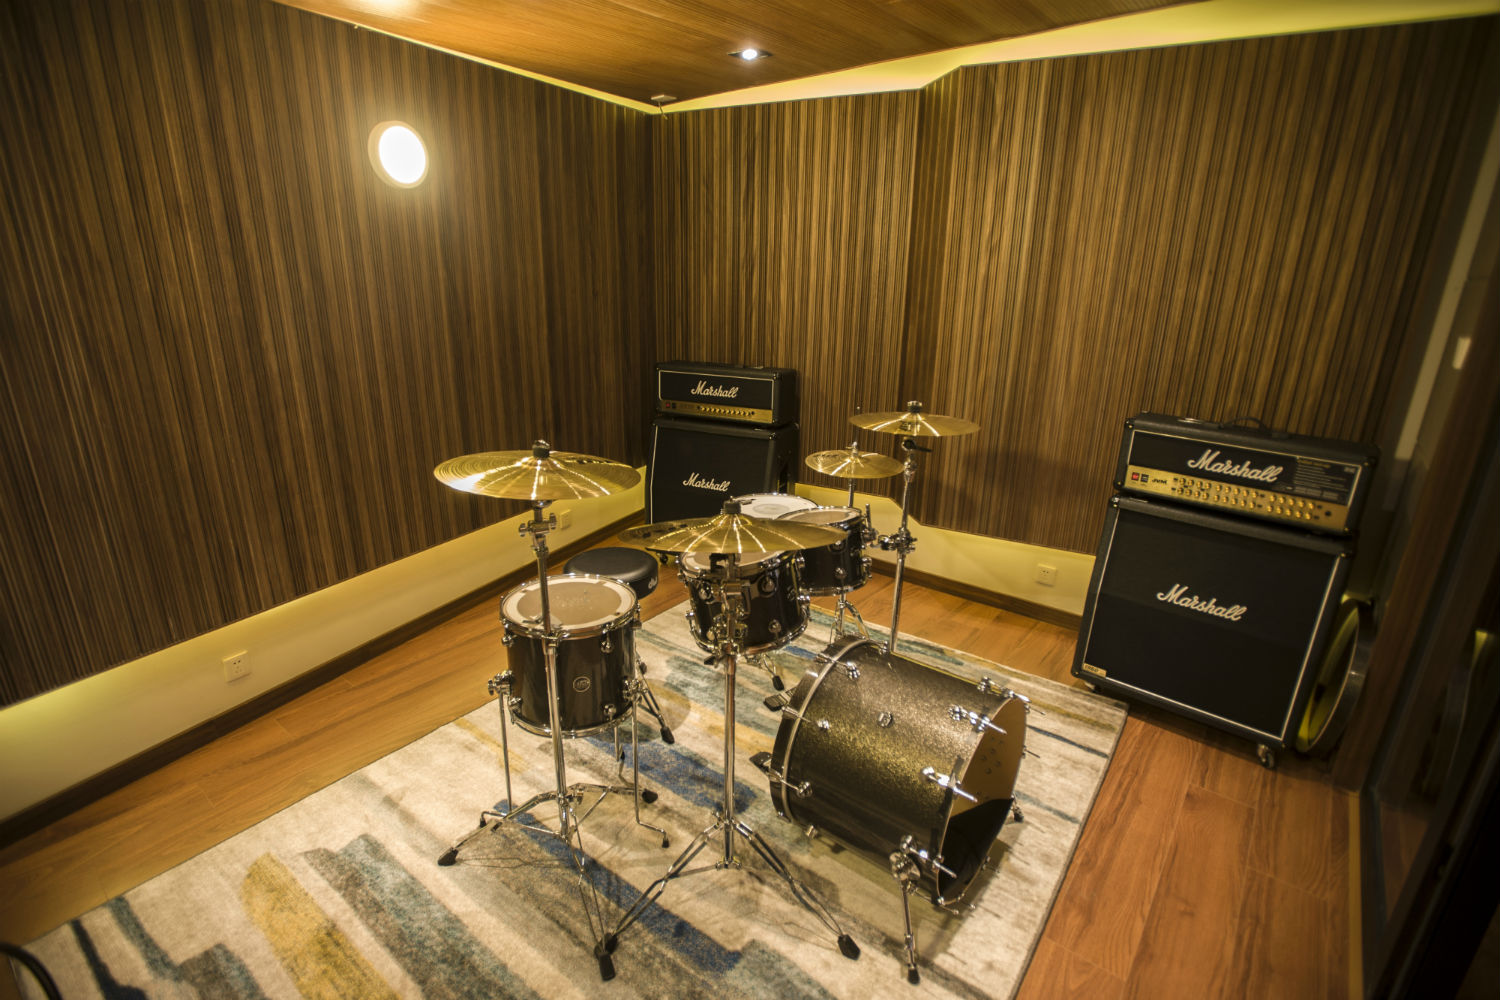 Zhejiang Conservatory of Music in Hangzhou, East China commissioned WSDG to create an important addition to this extraordinary institution, a 21st Century Music Production & Education Complex. Boutique ISO Booth with Drums Set and Amplifiers